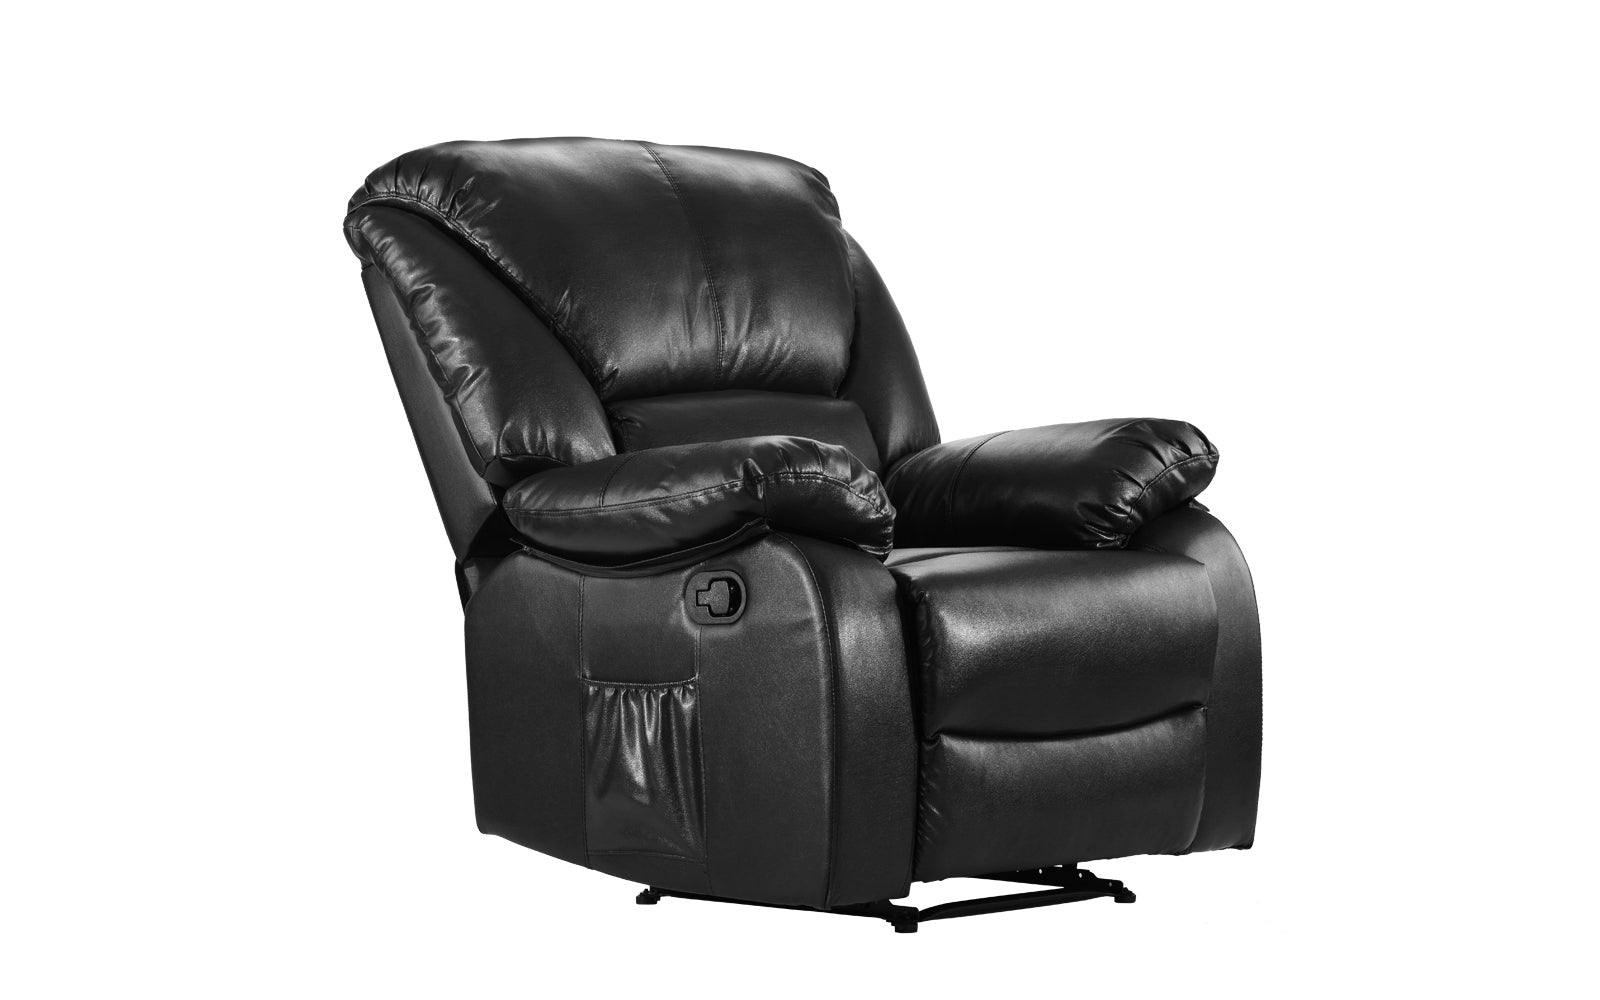 Superieur ... Bach Full Body Massage Recliner Chair Black Angle ...